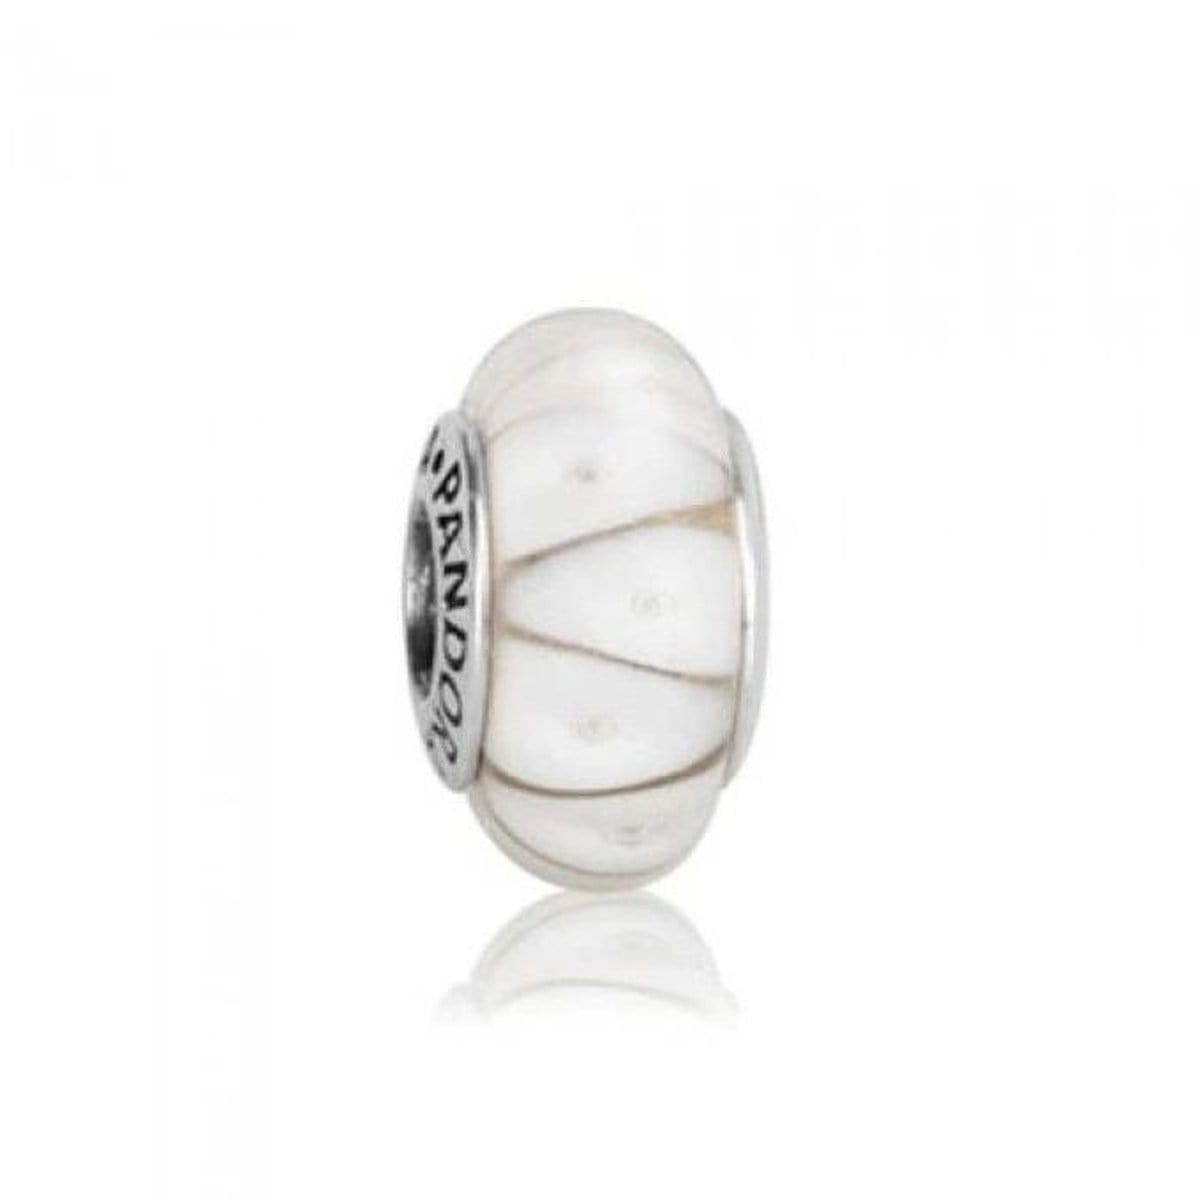 White Looking Murano Glass Charm - 790921-Pandora-Renee Taylor Gallery